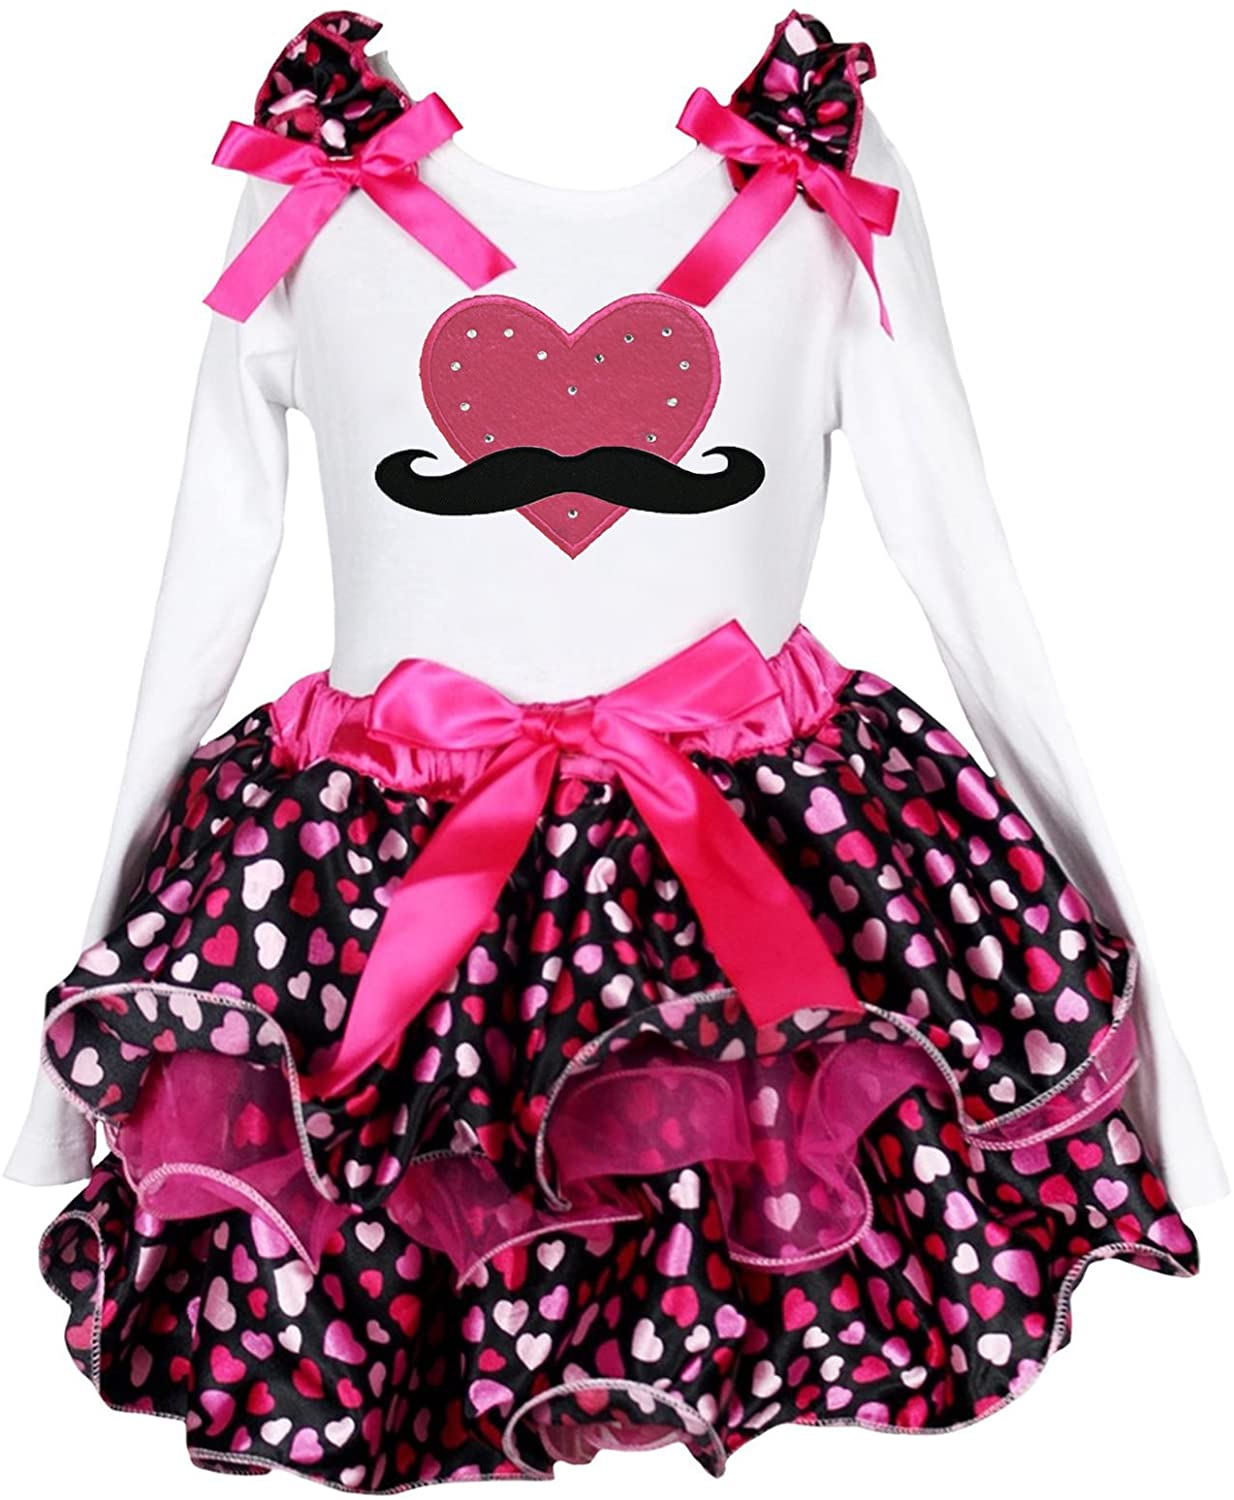 Valentine Dress Mustache Red Heart L/s Shirt Hearts Petal Skirt Set 1-8y